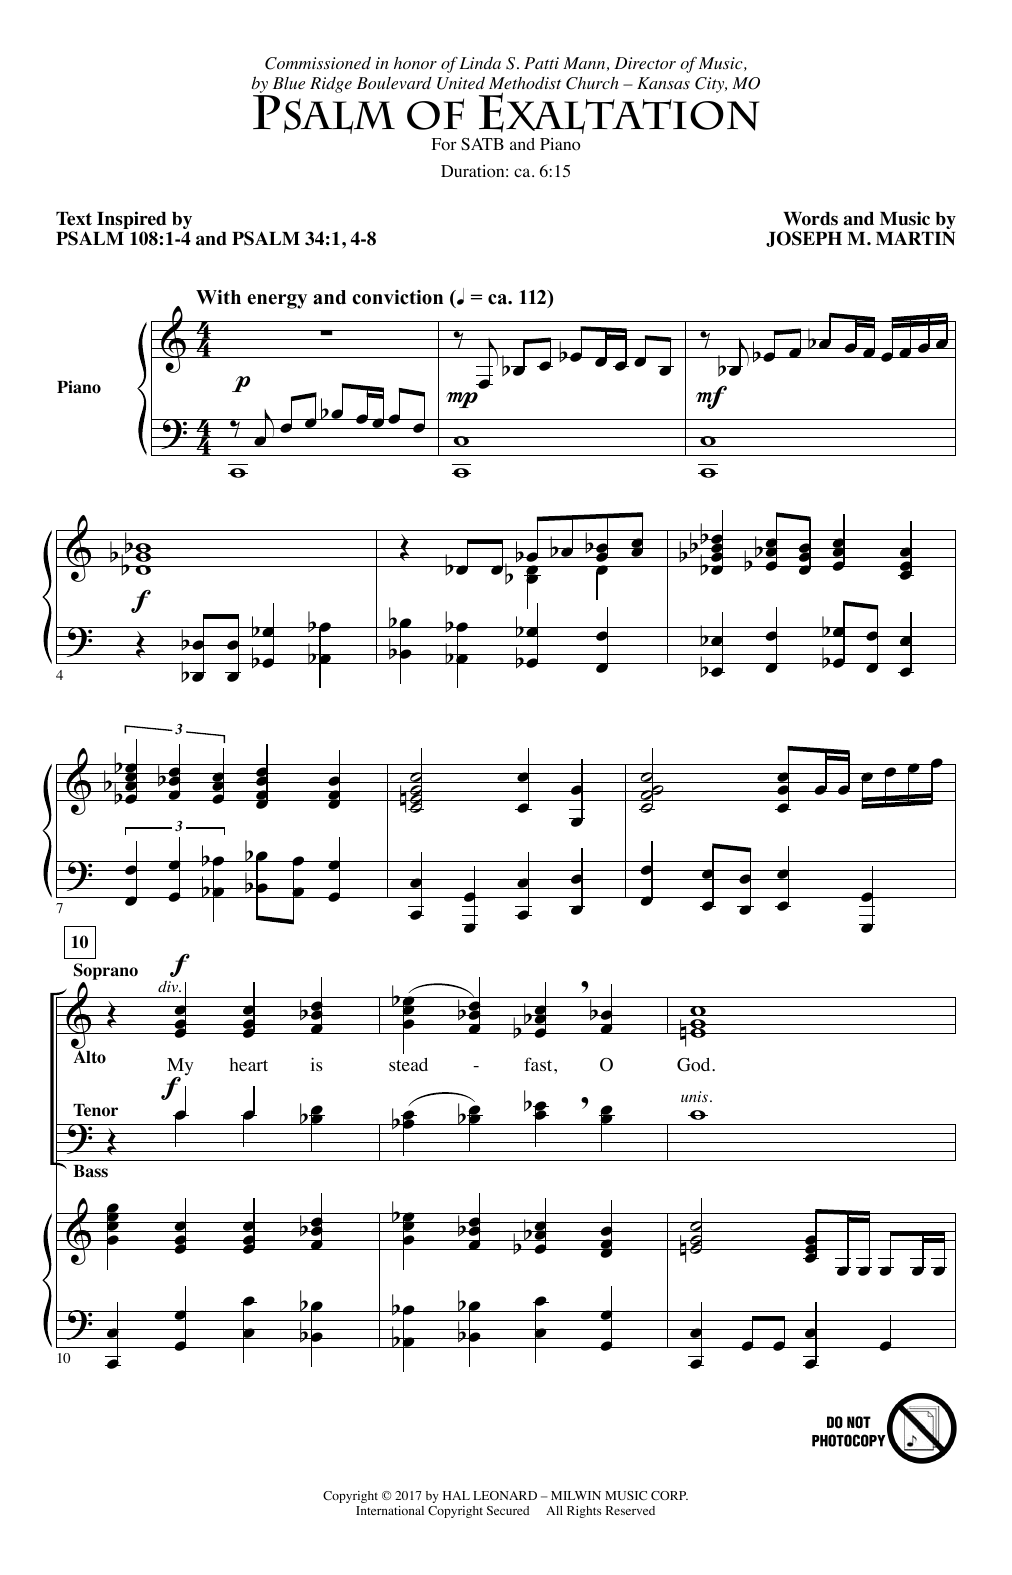 Joseph M. Martin Psalm Of Exaltation sheet music notes and chords. Download Printable PDF.